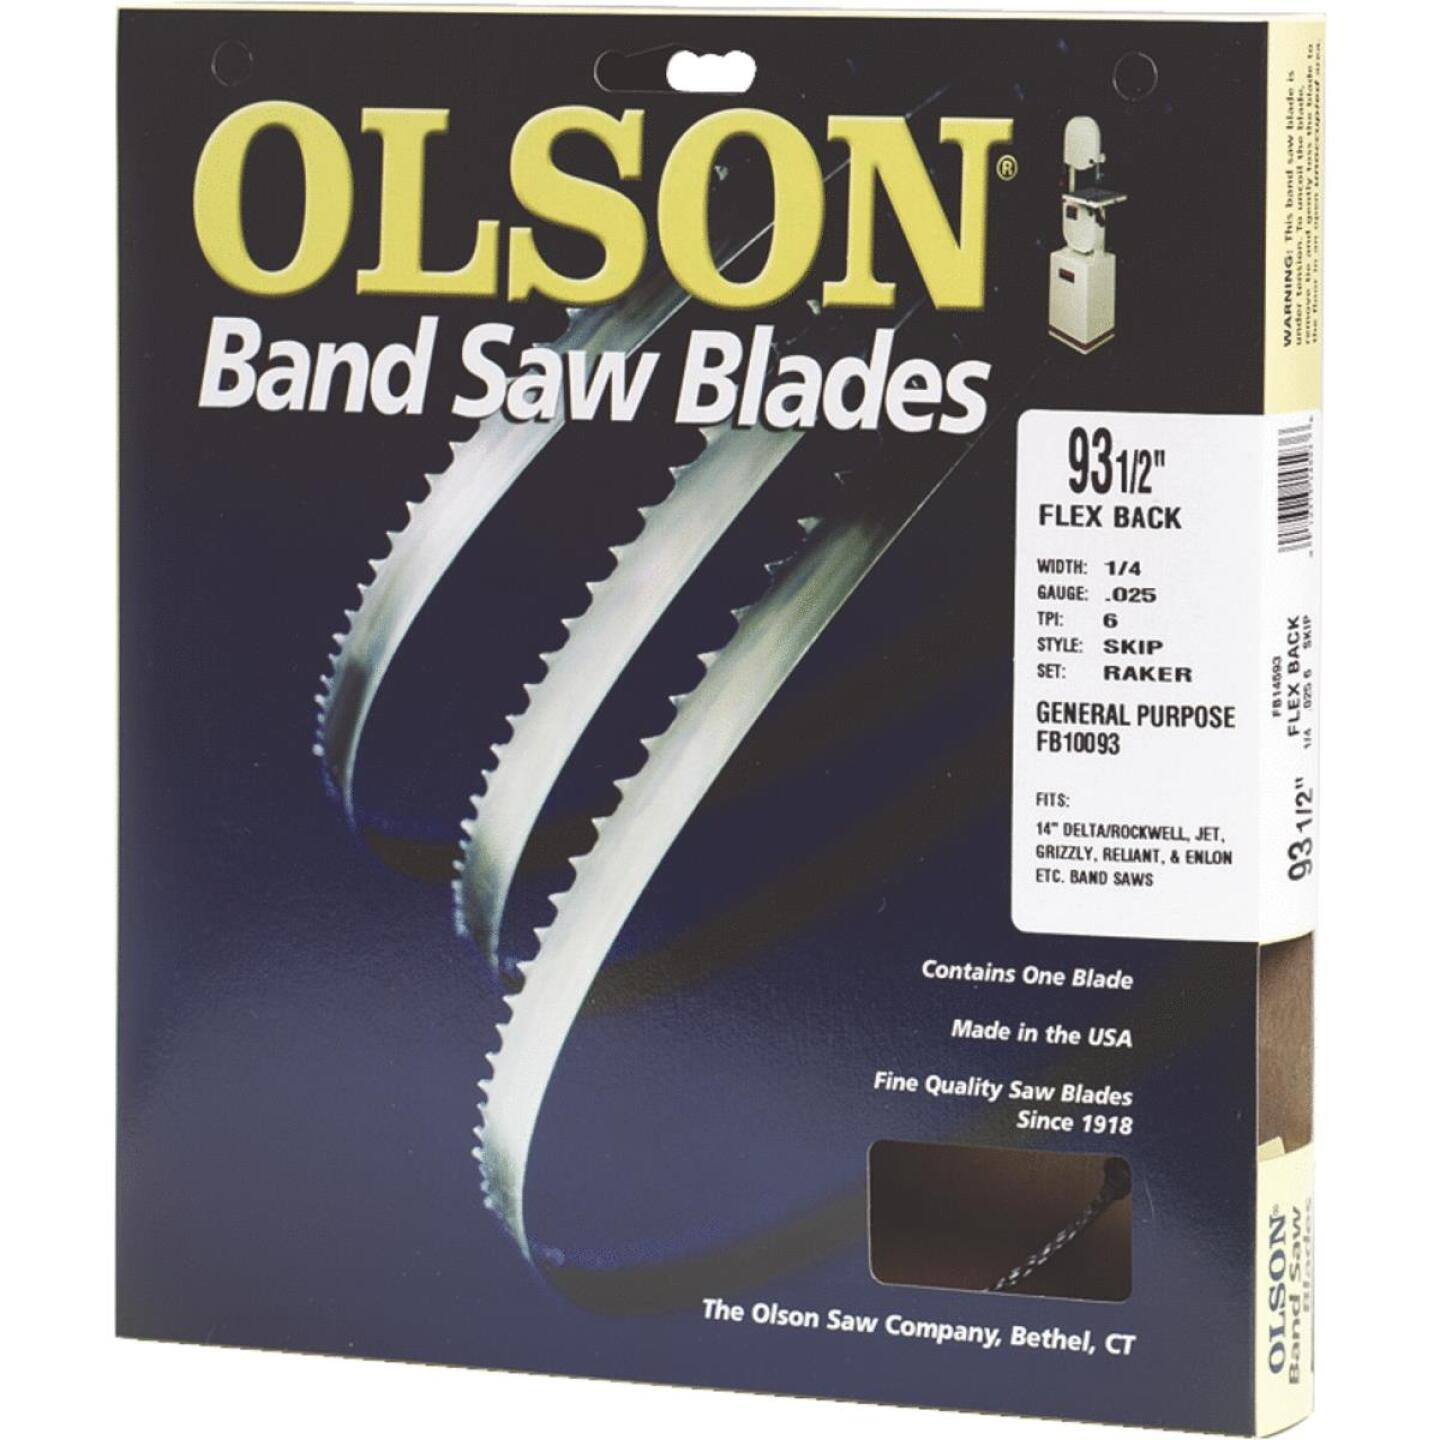 Olson 93-1/2 In. x 1/2 In. 3 TPI Hook Flex Back Band Saw Blade Image 1